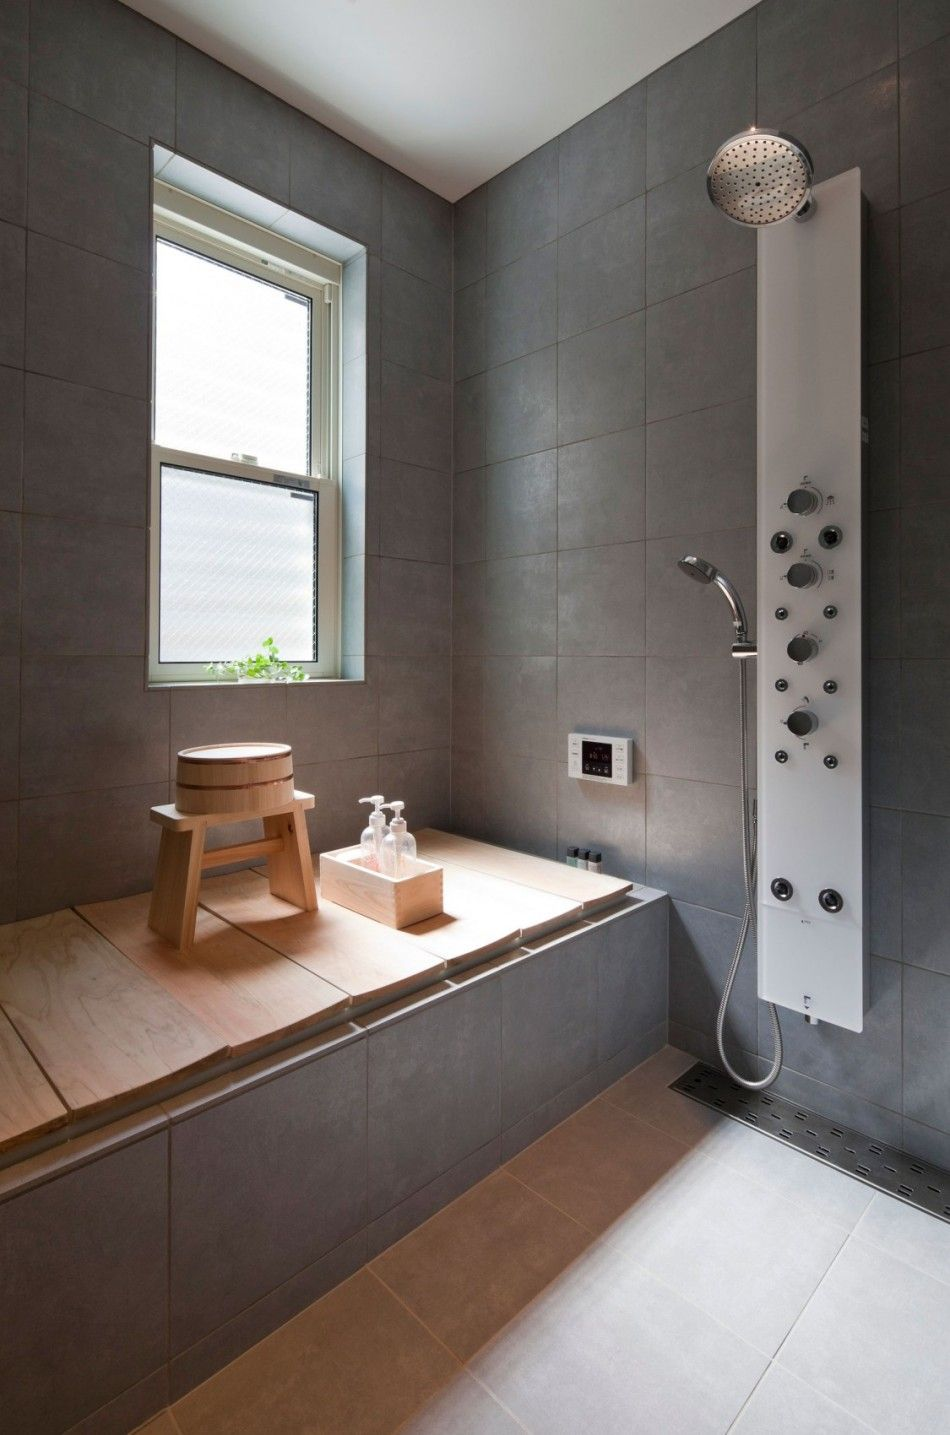 Meuble Salle De Bain Brico Depot Alencon ~ I Want This Japanese Bathroom In My American Home Id Es Salle De